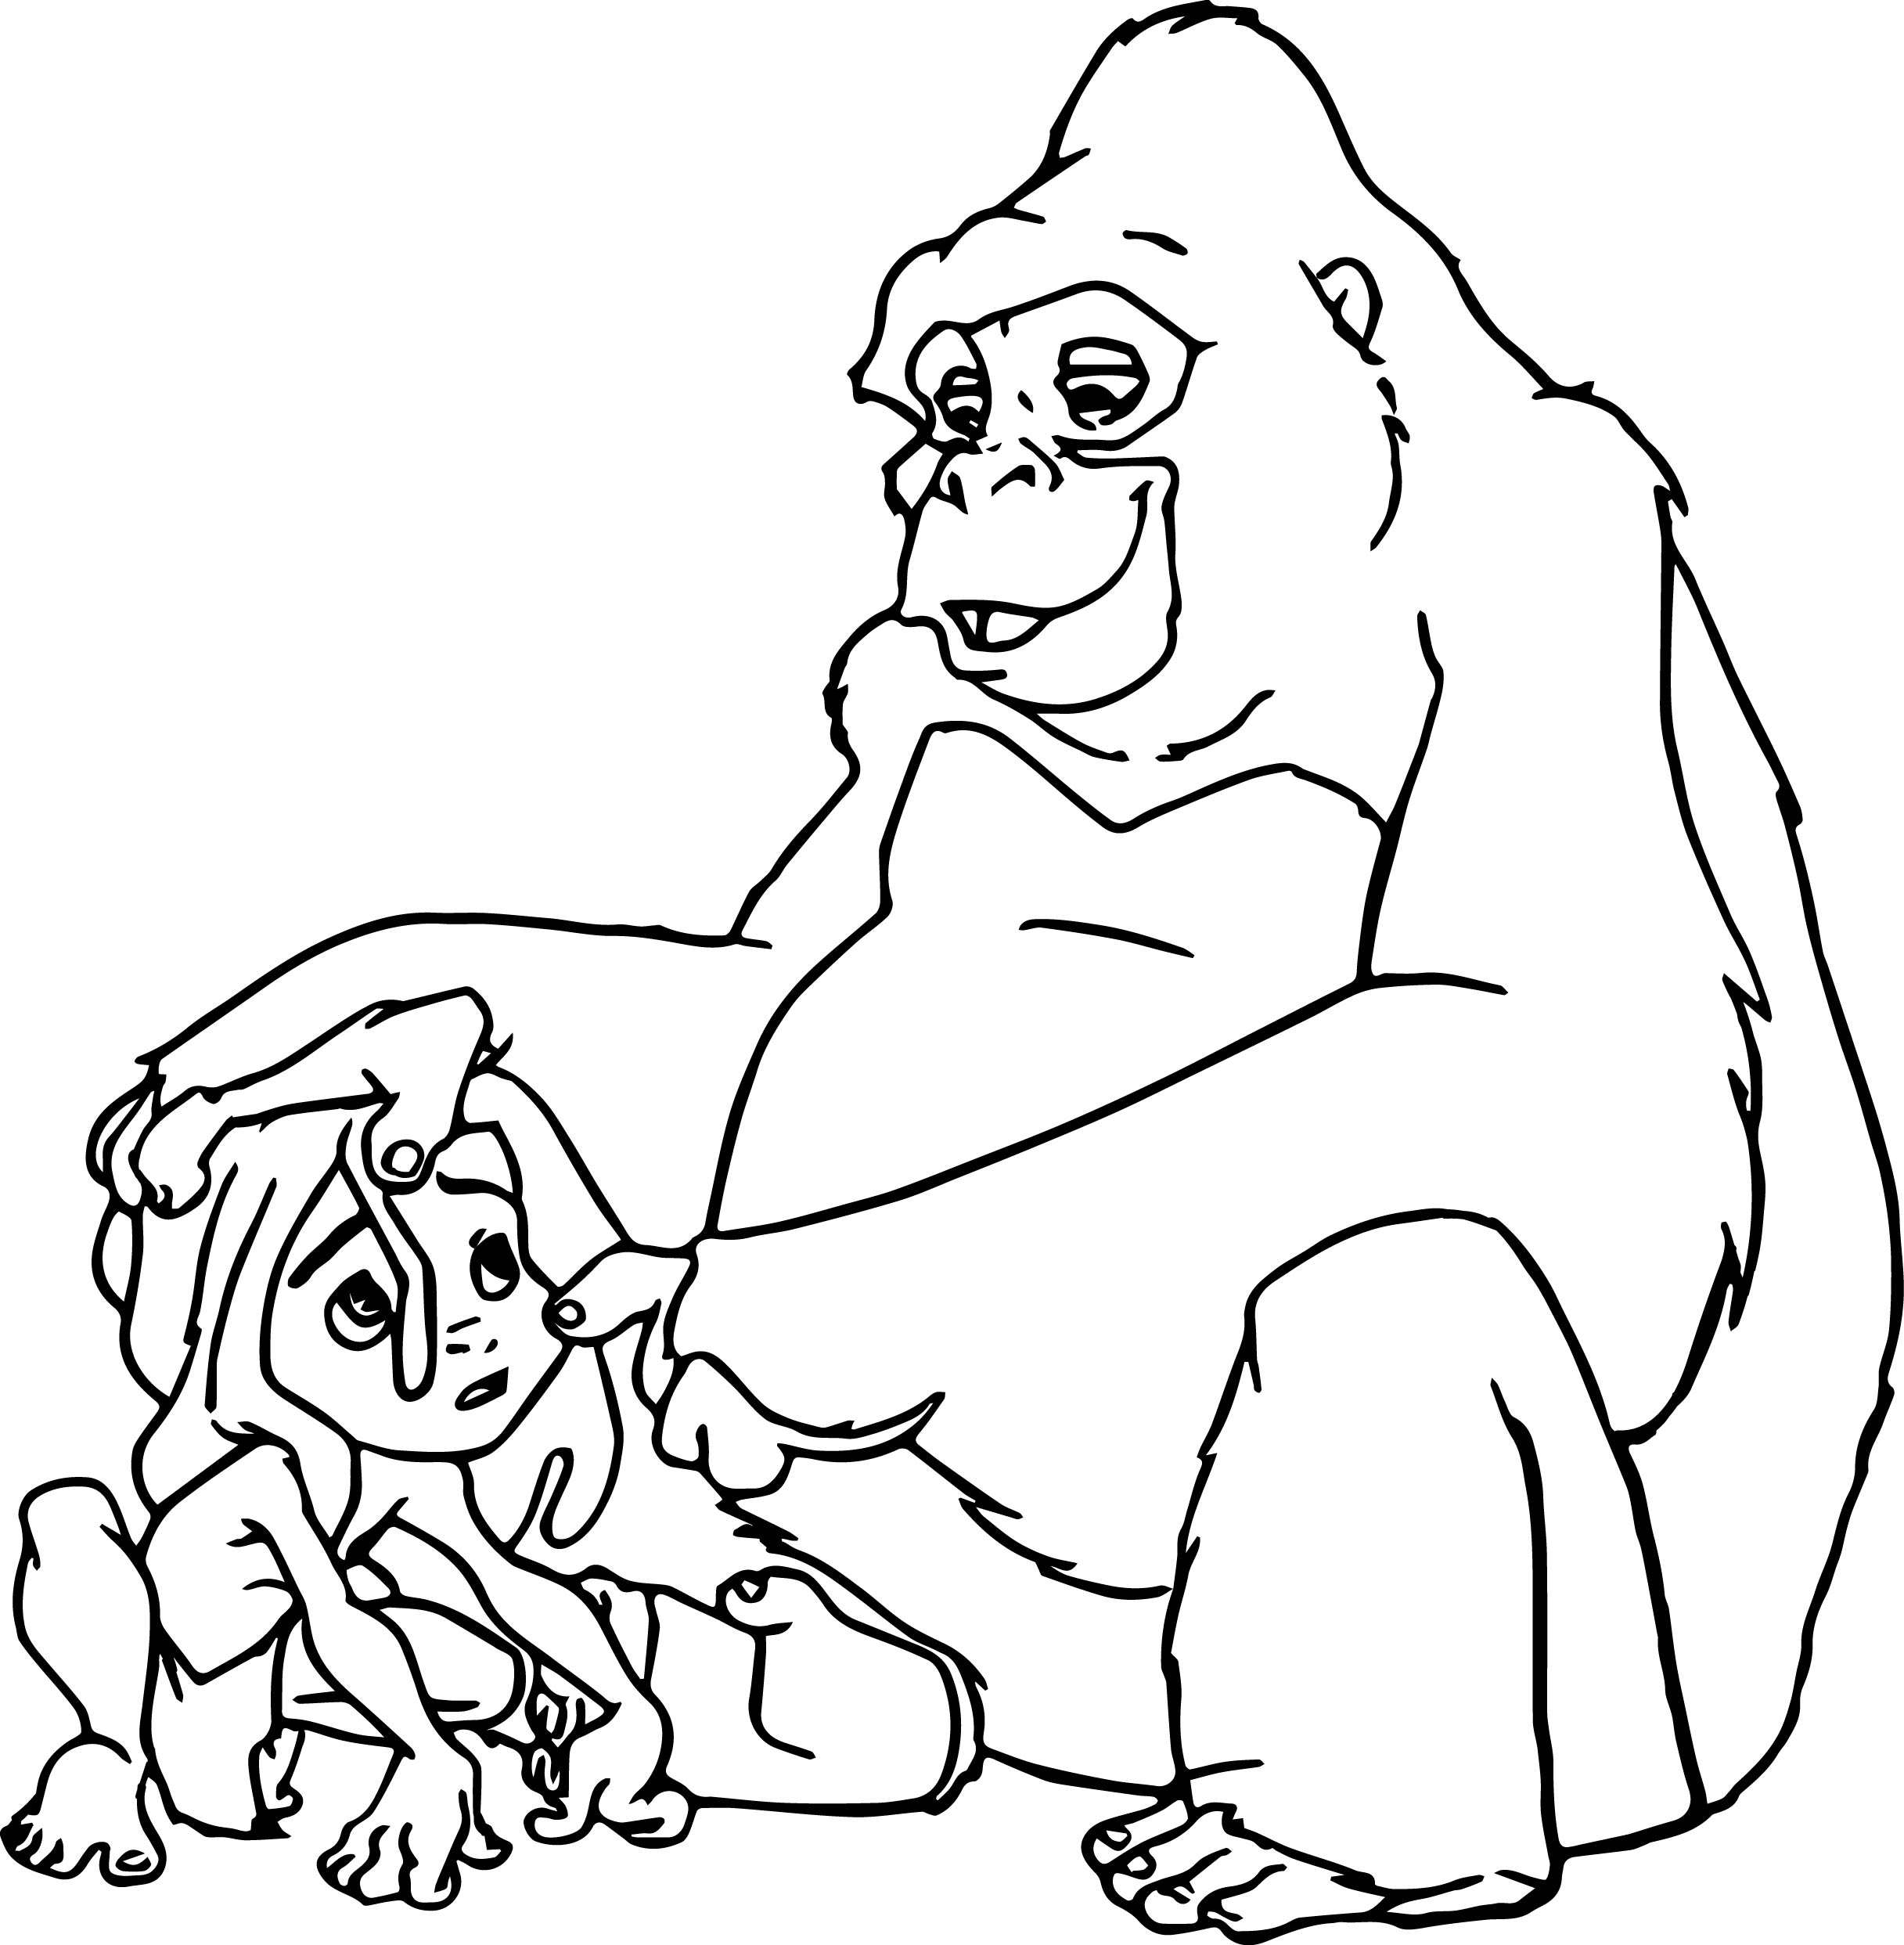 Sad young tarzan and gorilla coloring page for Tarzan coloring pages